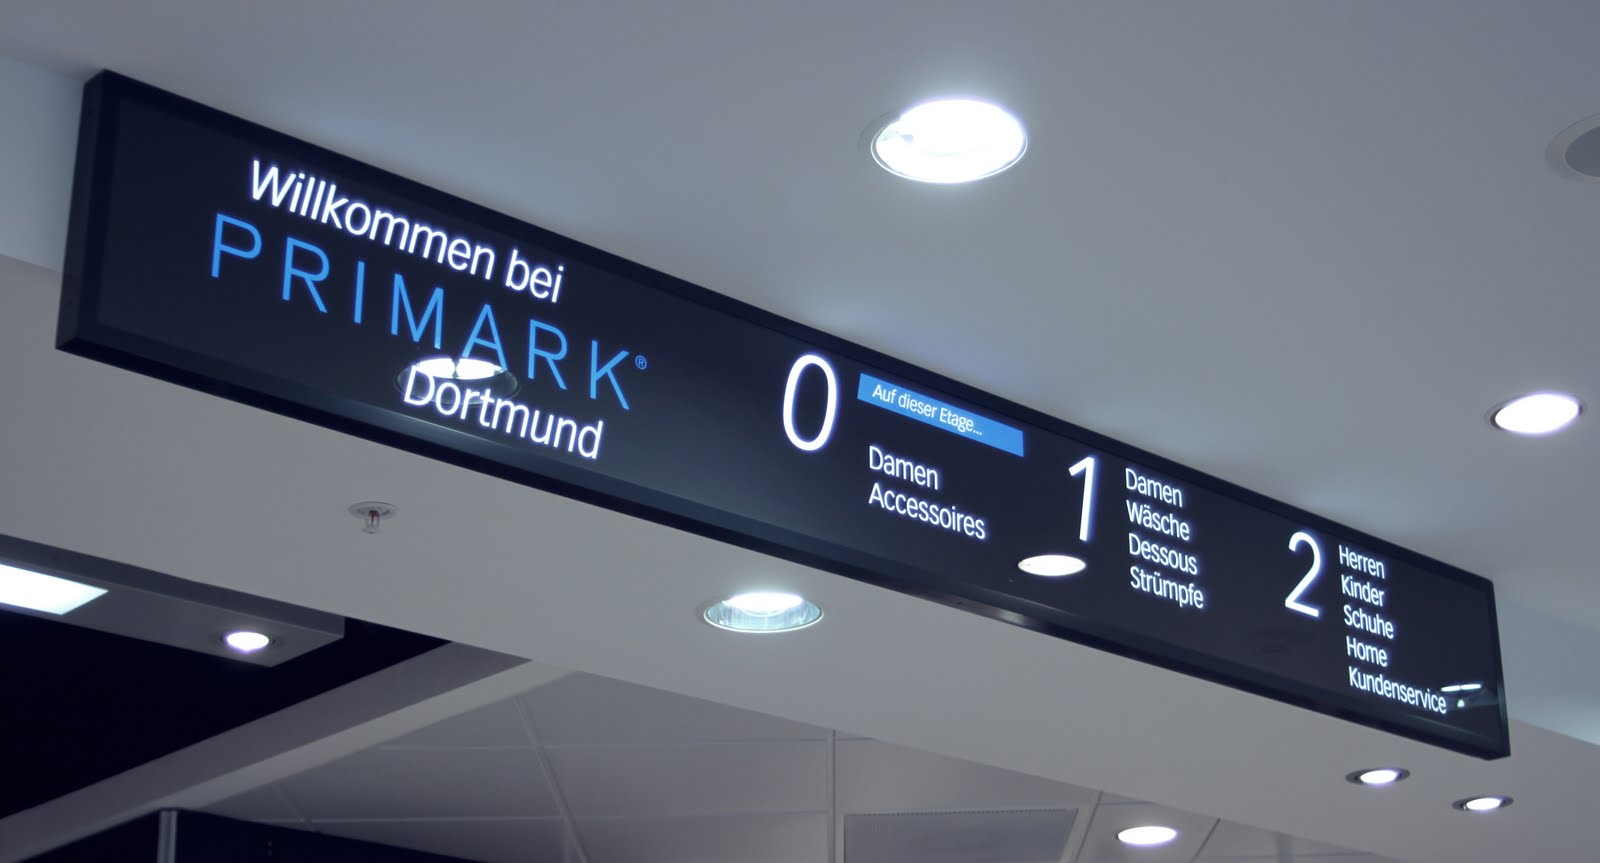 primark dortmund website